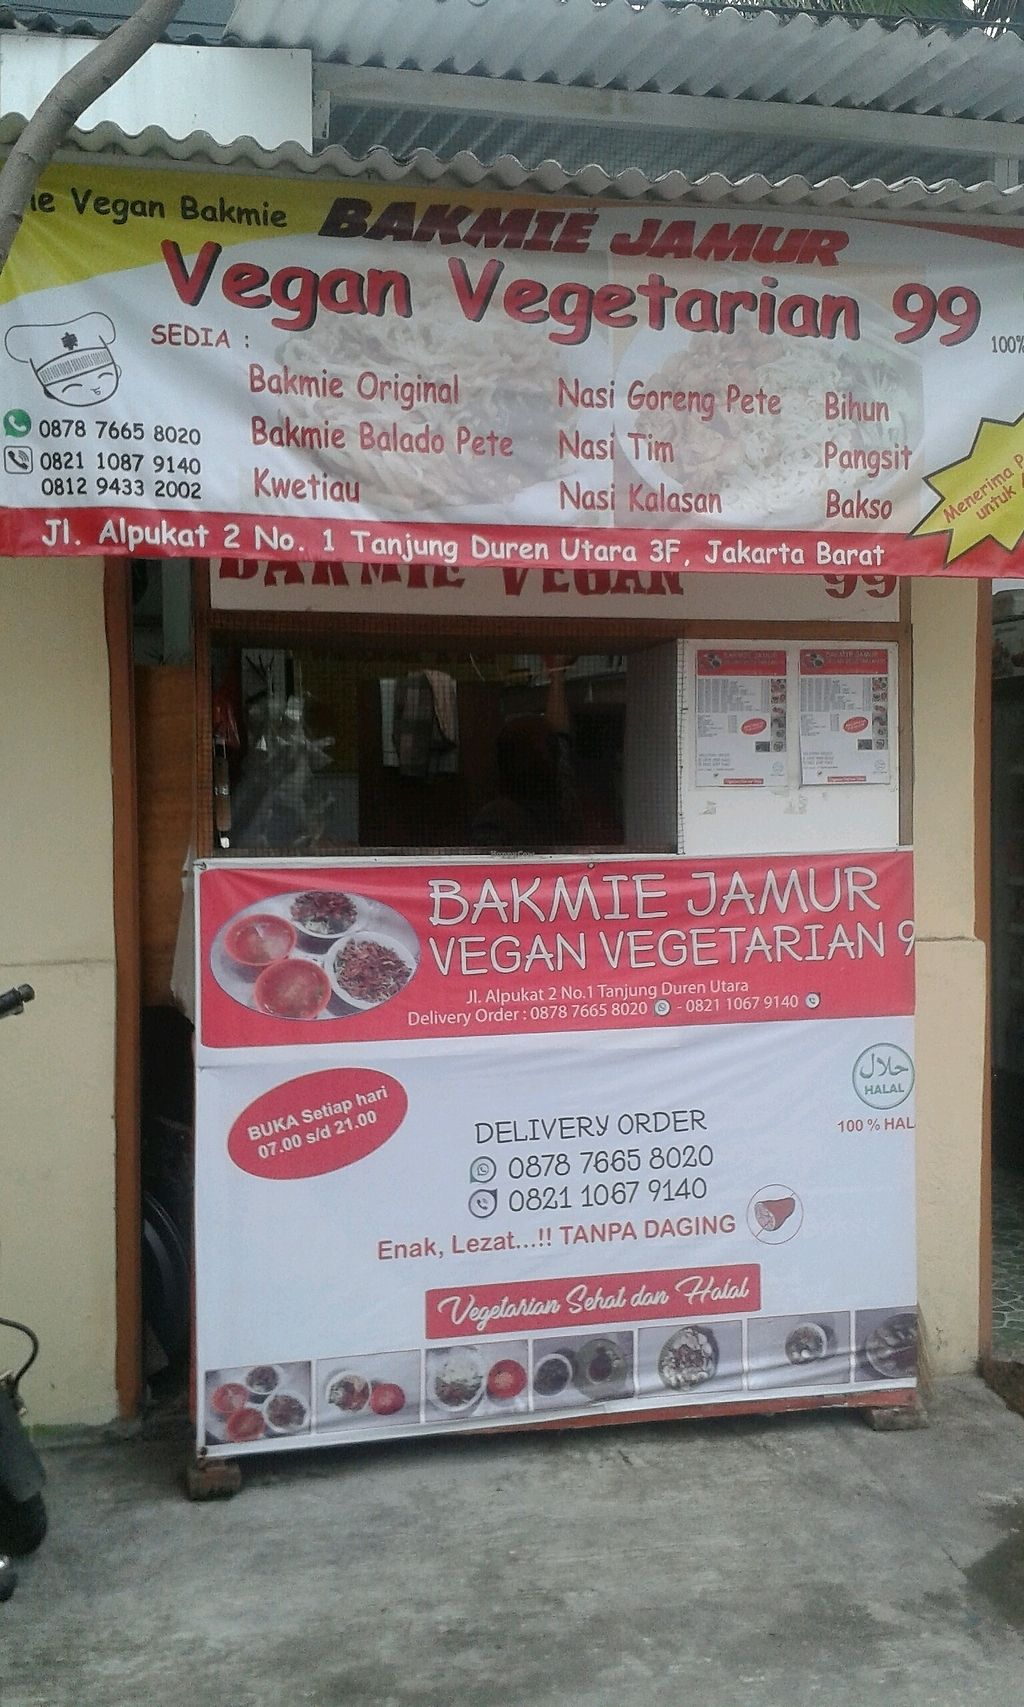 """Photo of Bakmie Jamur  by <a href=""""/members/profile/Ibce"""">Ibce</a> <br/>the entrance <br/> March 28, 2018  - <a href='/contact/abuse/image/109374/377111'>Report</a>"""